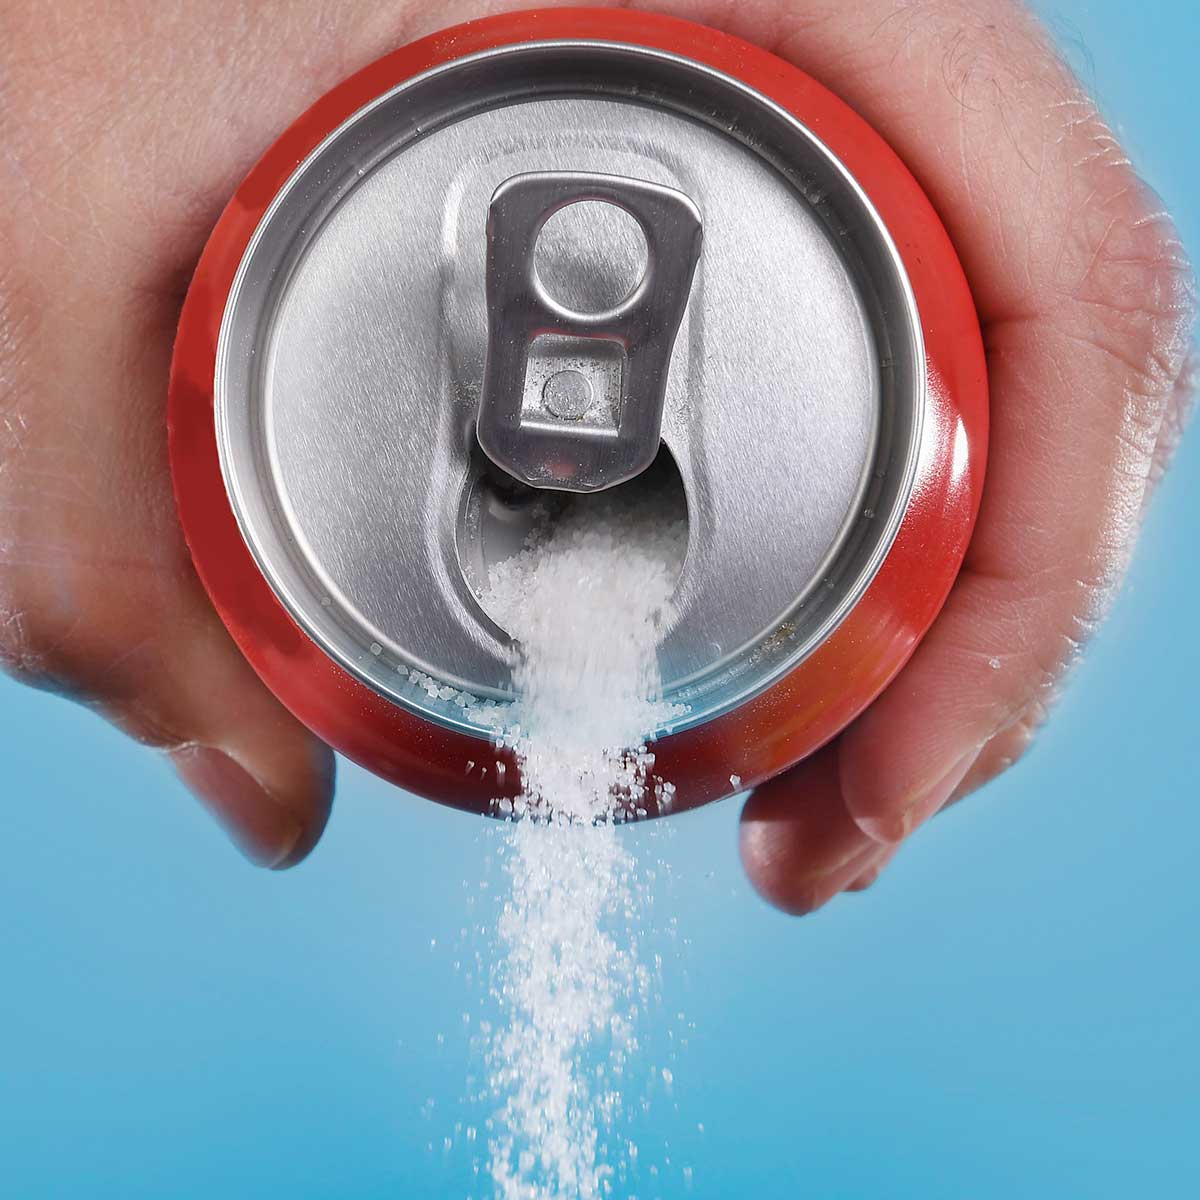 An easy way to cut 2,000 tsp. of sugar from your diet